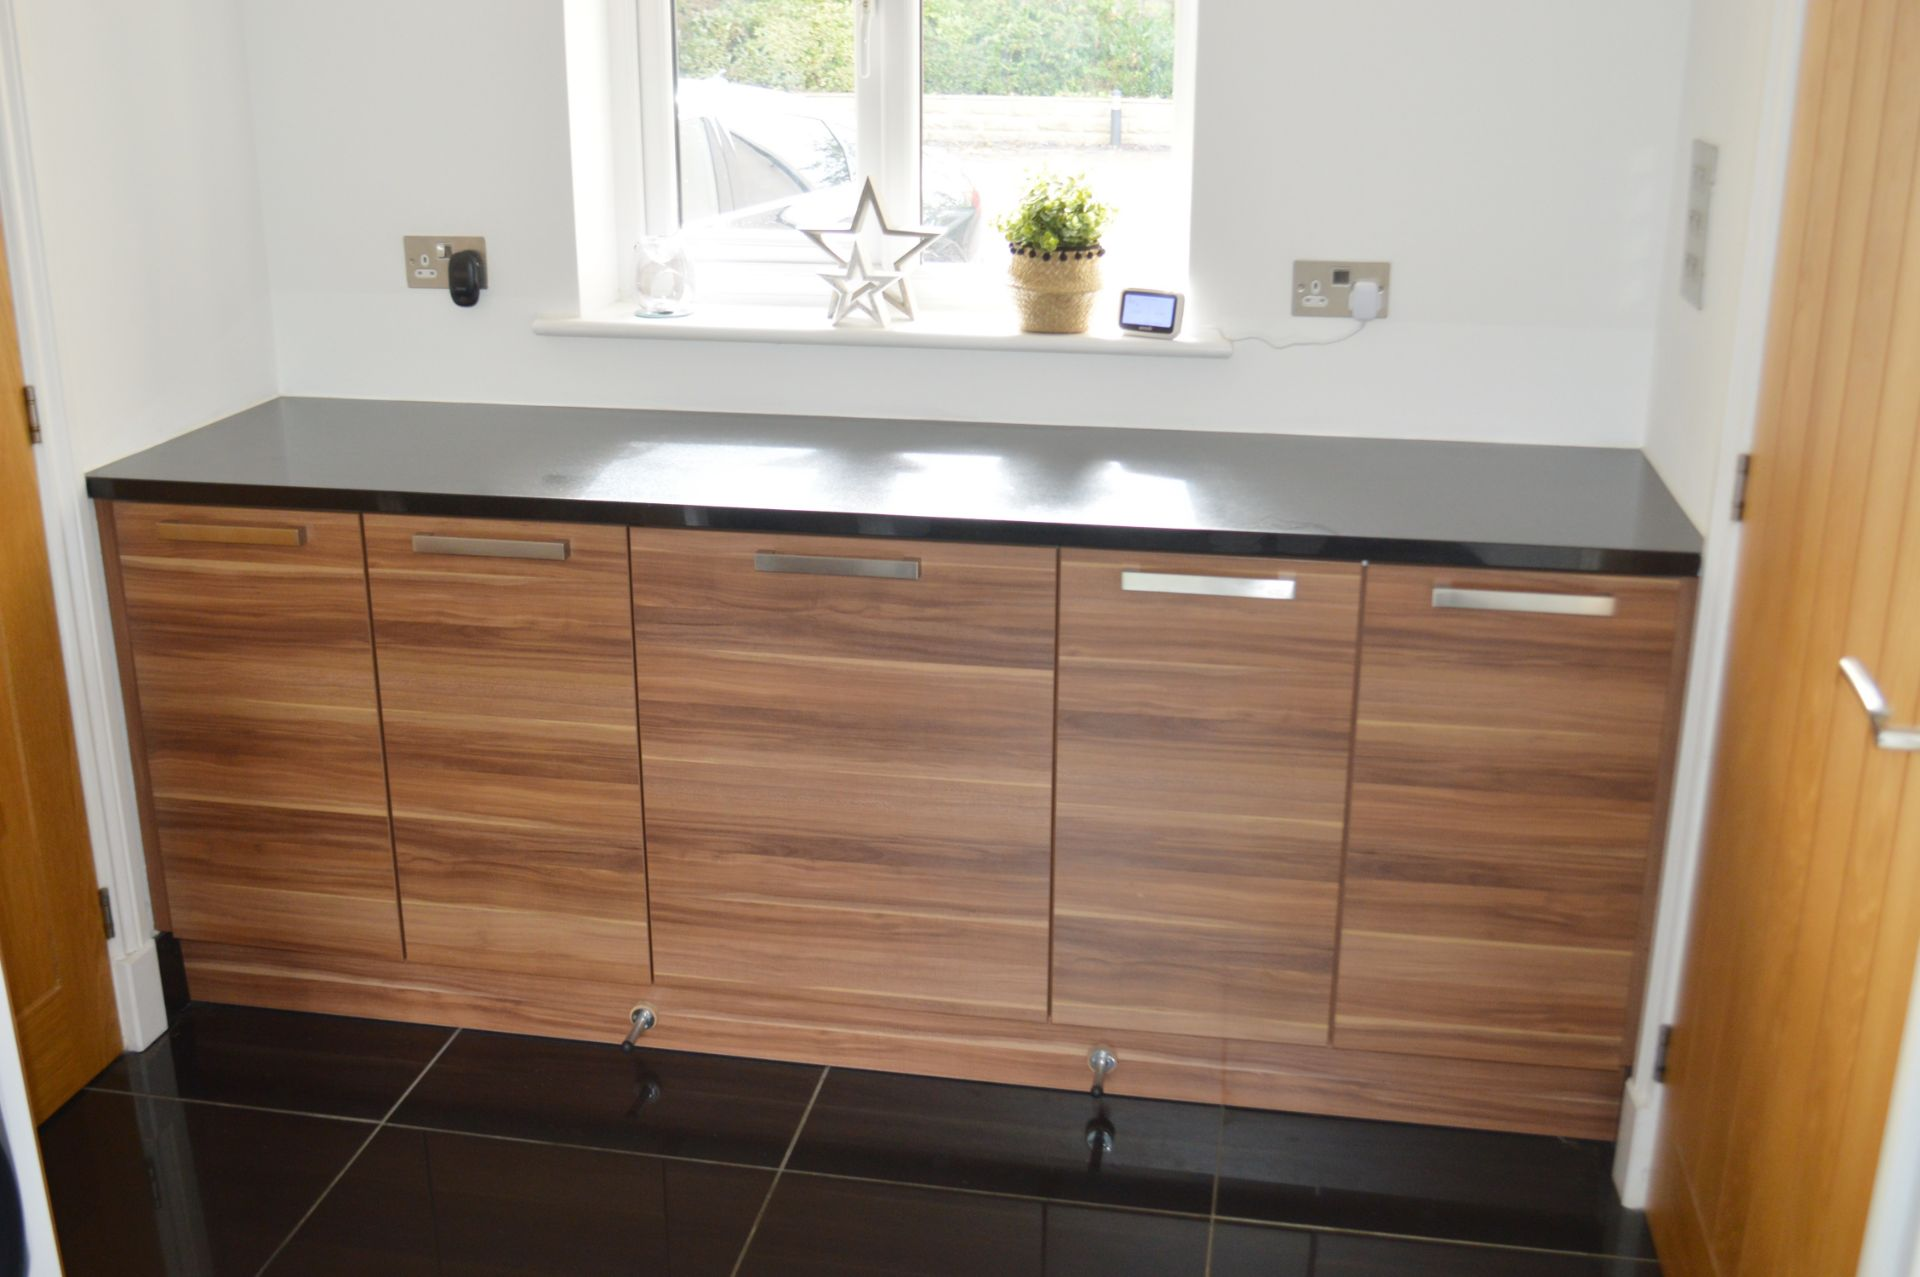 1 x Contemporary Bespoke Fitted Kitchen With Integrated Neff Branded Appliances, Quartz Worktops - Image 32 of 52